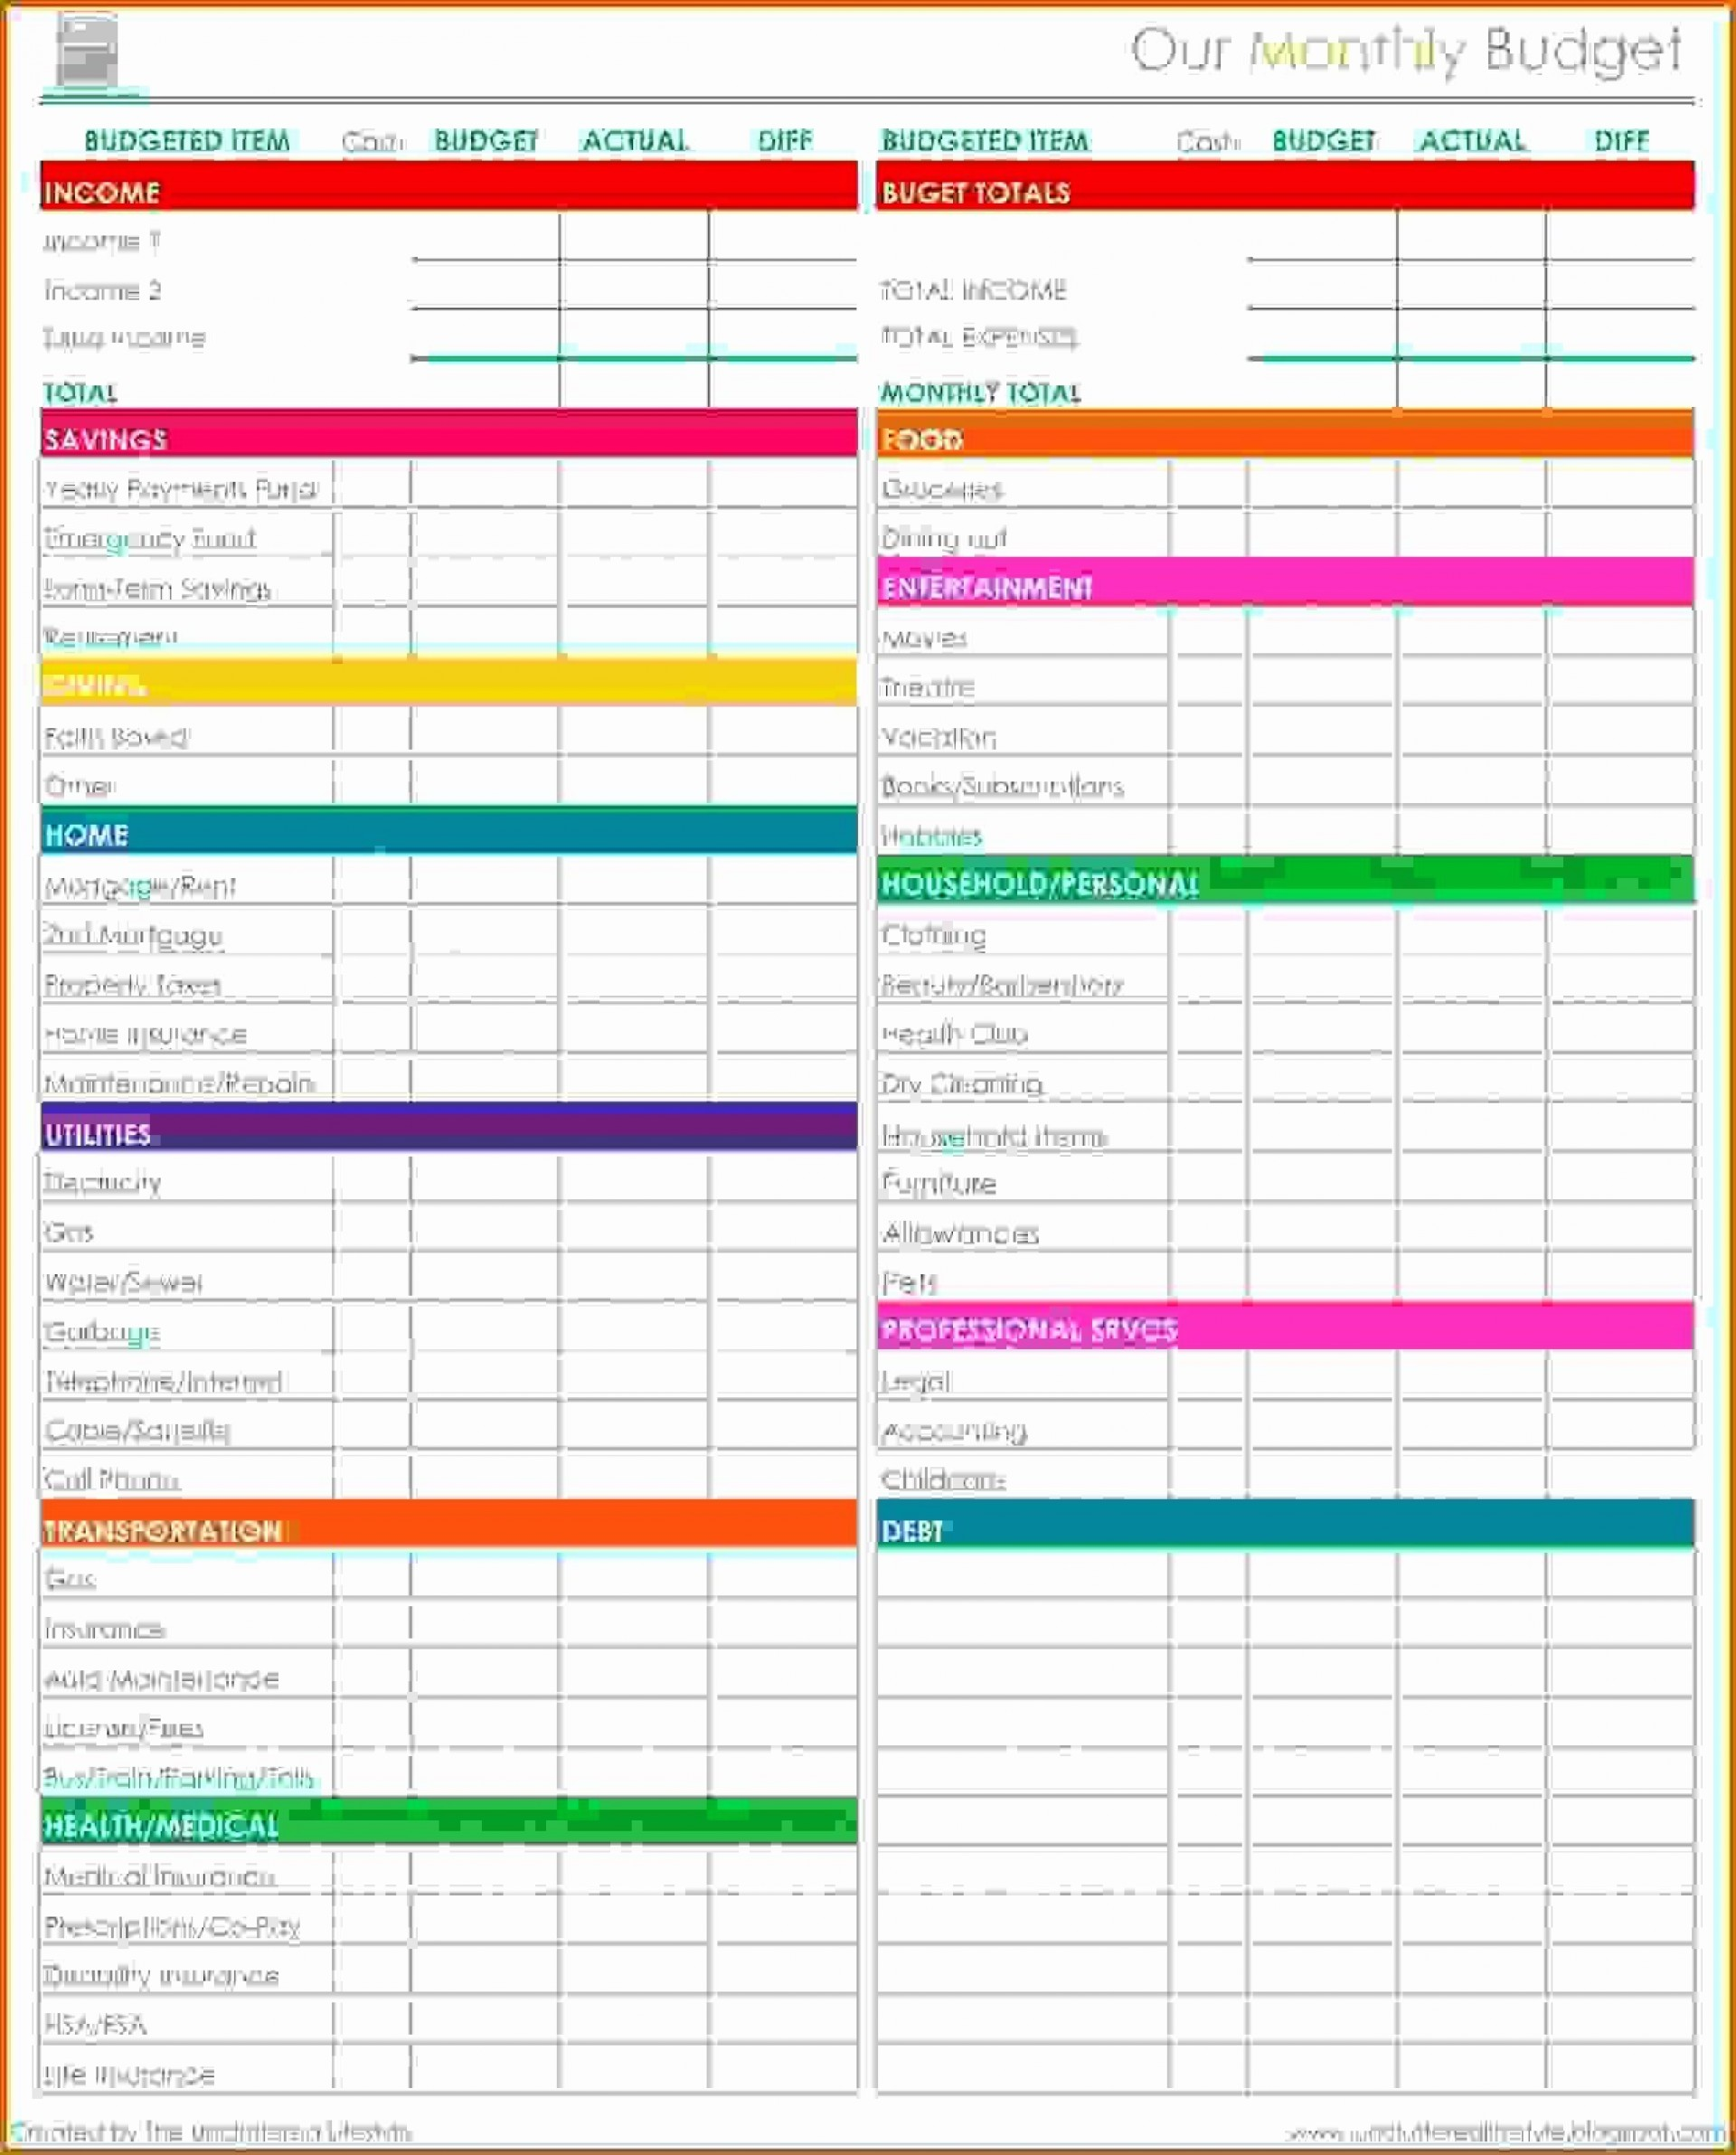 006 Unusual Free Household Budget Template Image  Templates Printable Form Home Excel1920